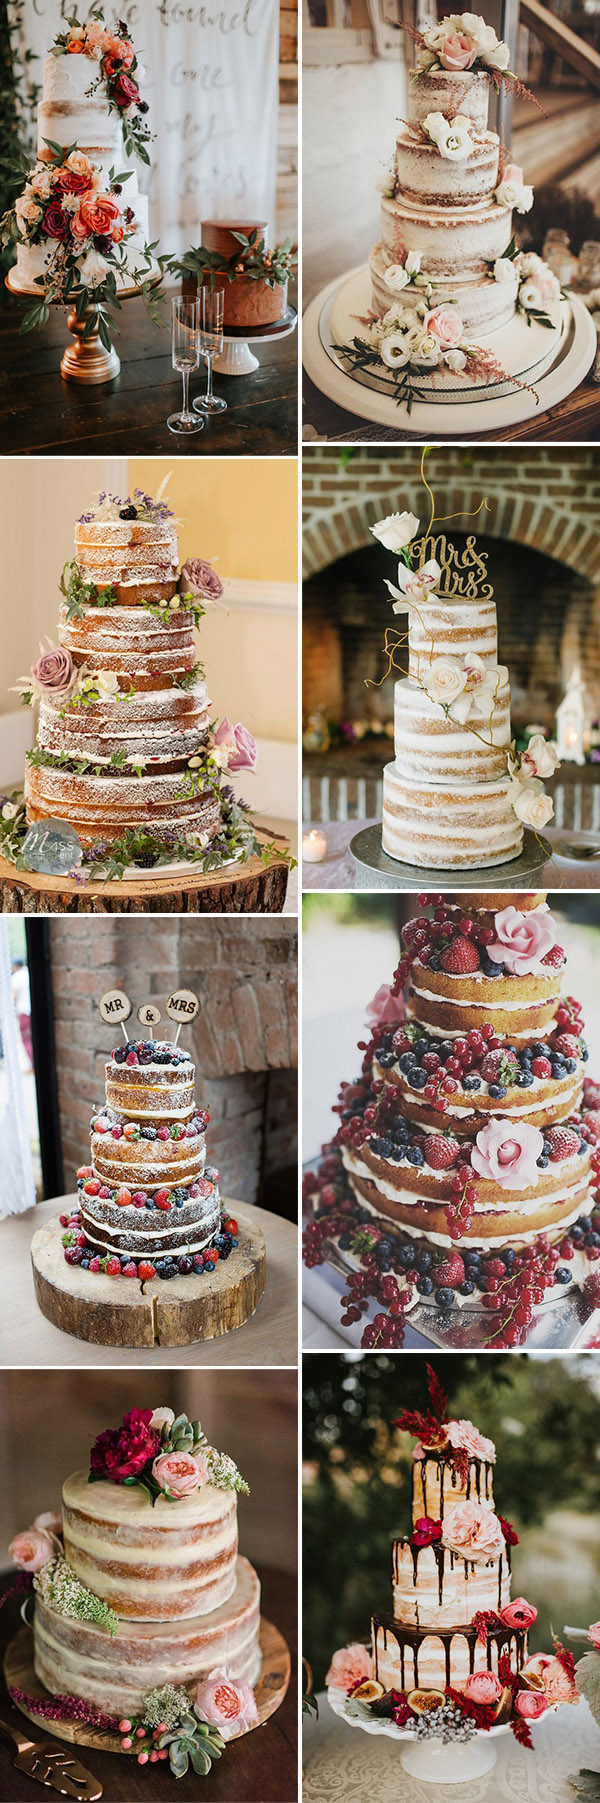 stunning naked wedding cakes